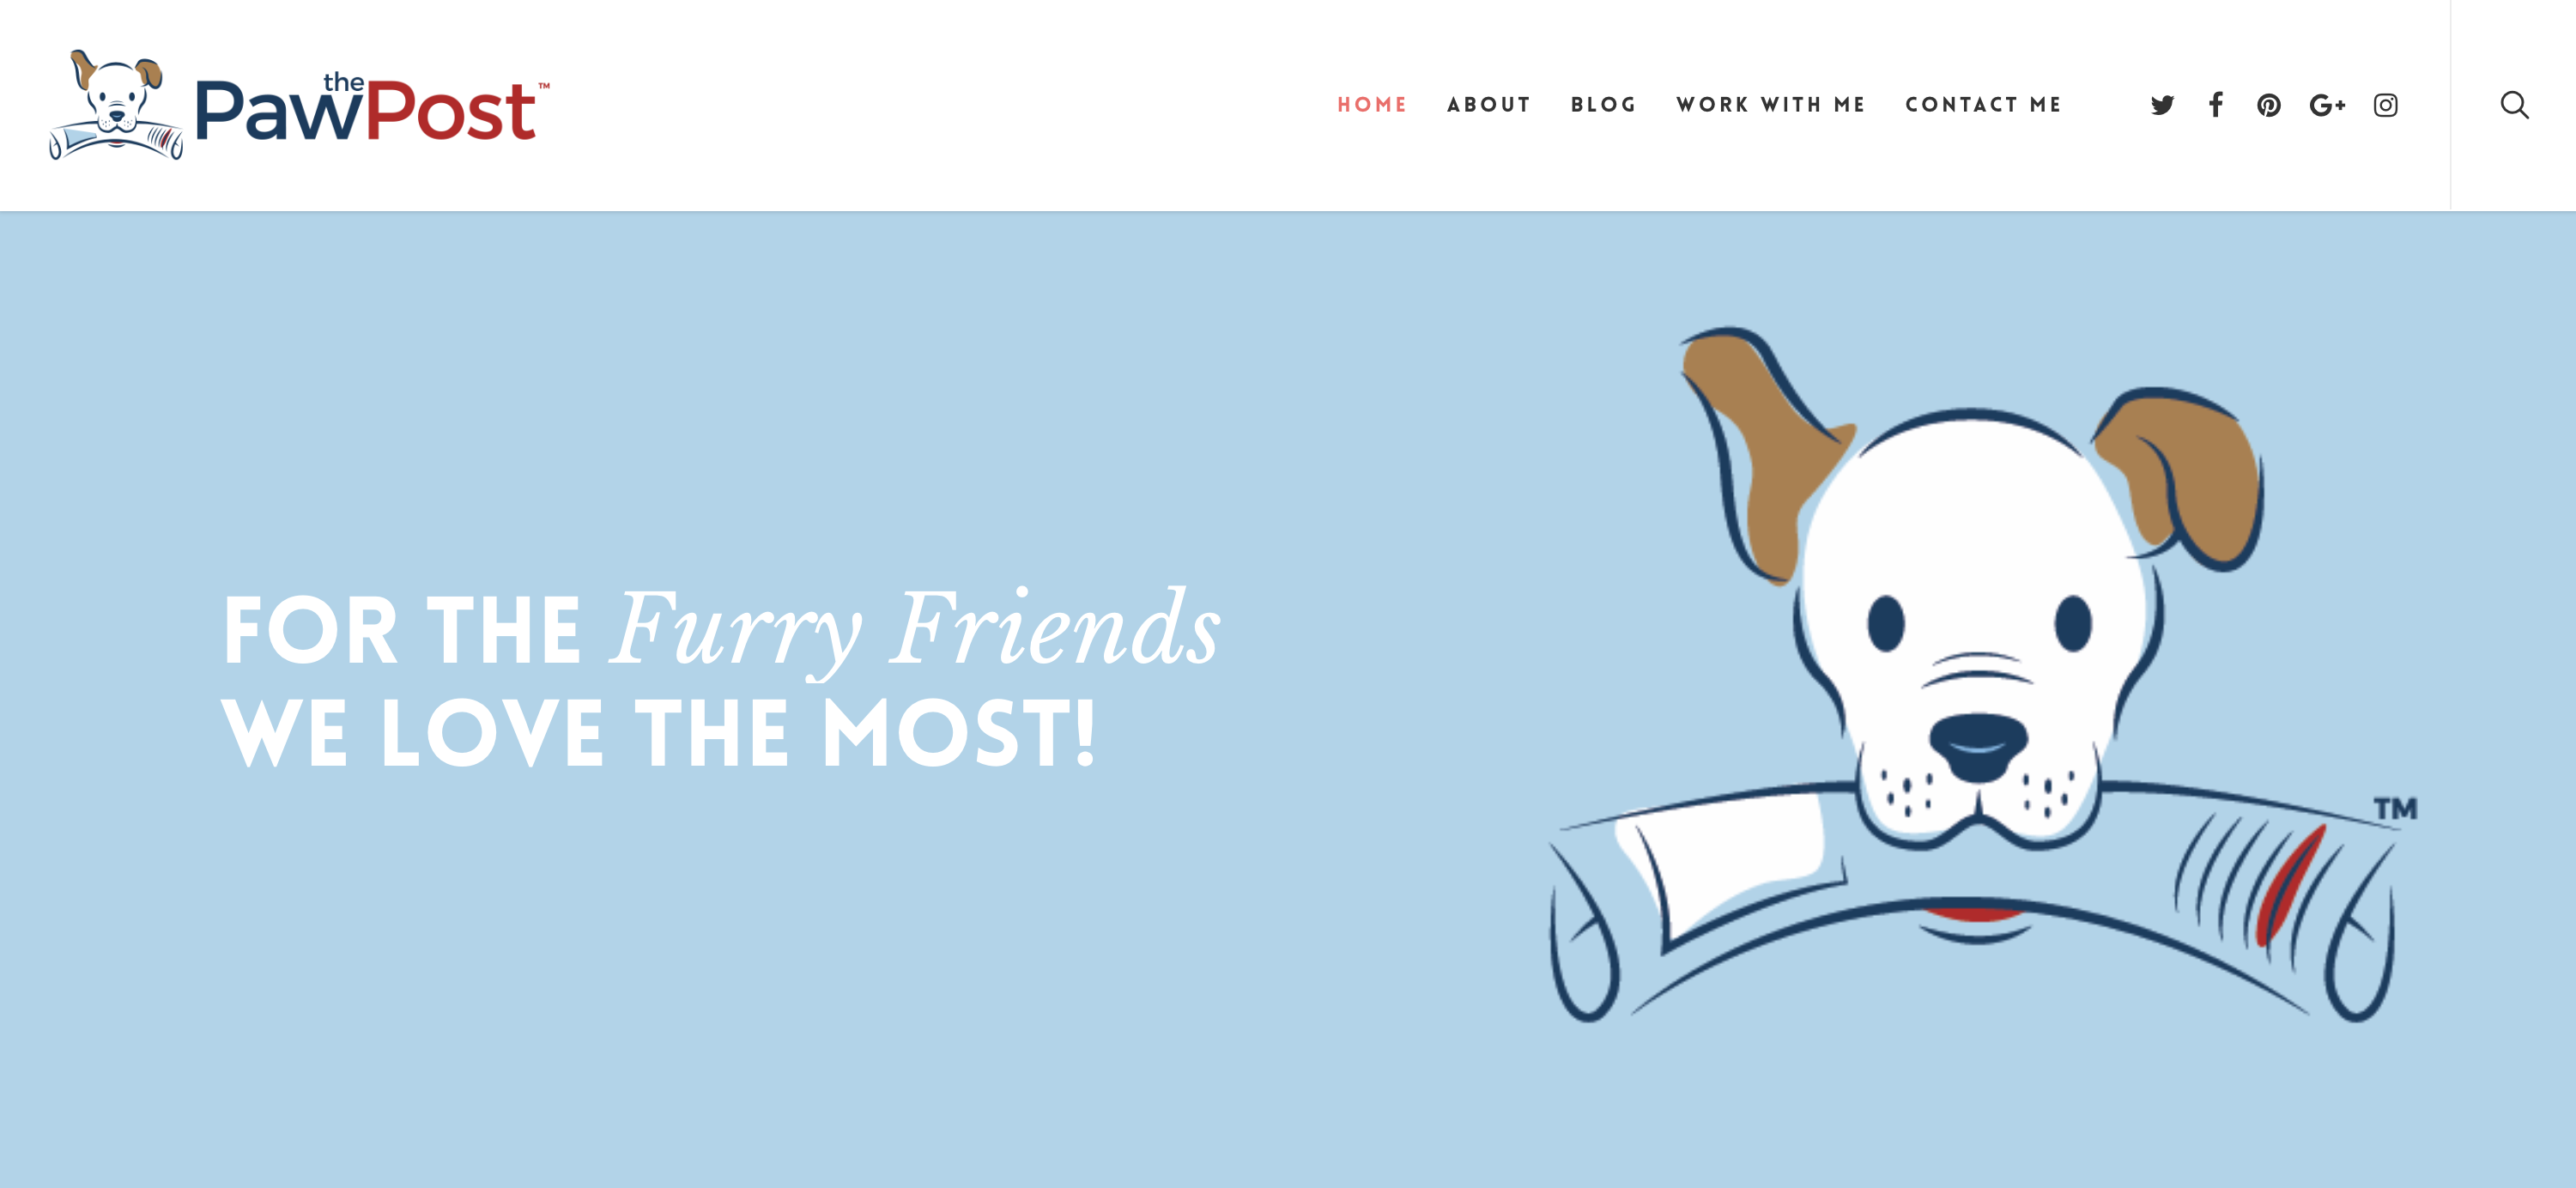 The Paw Post Website and Blog for Pet Businesses